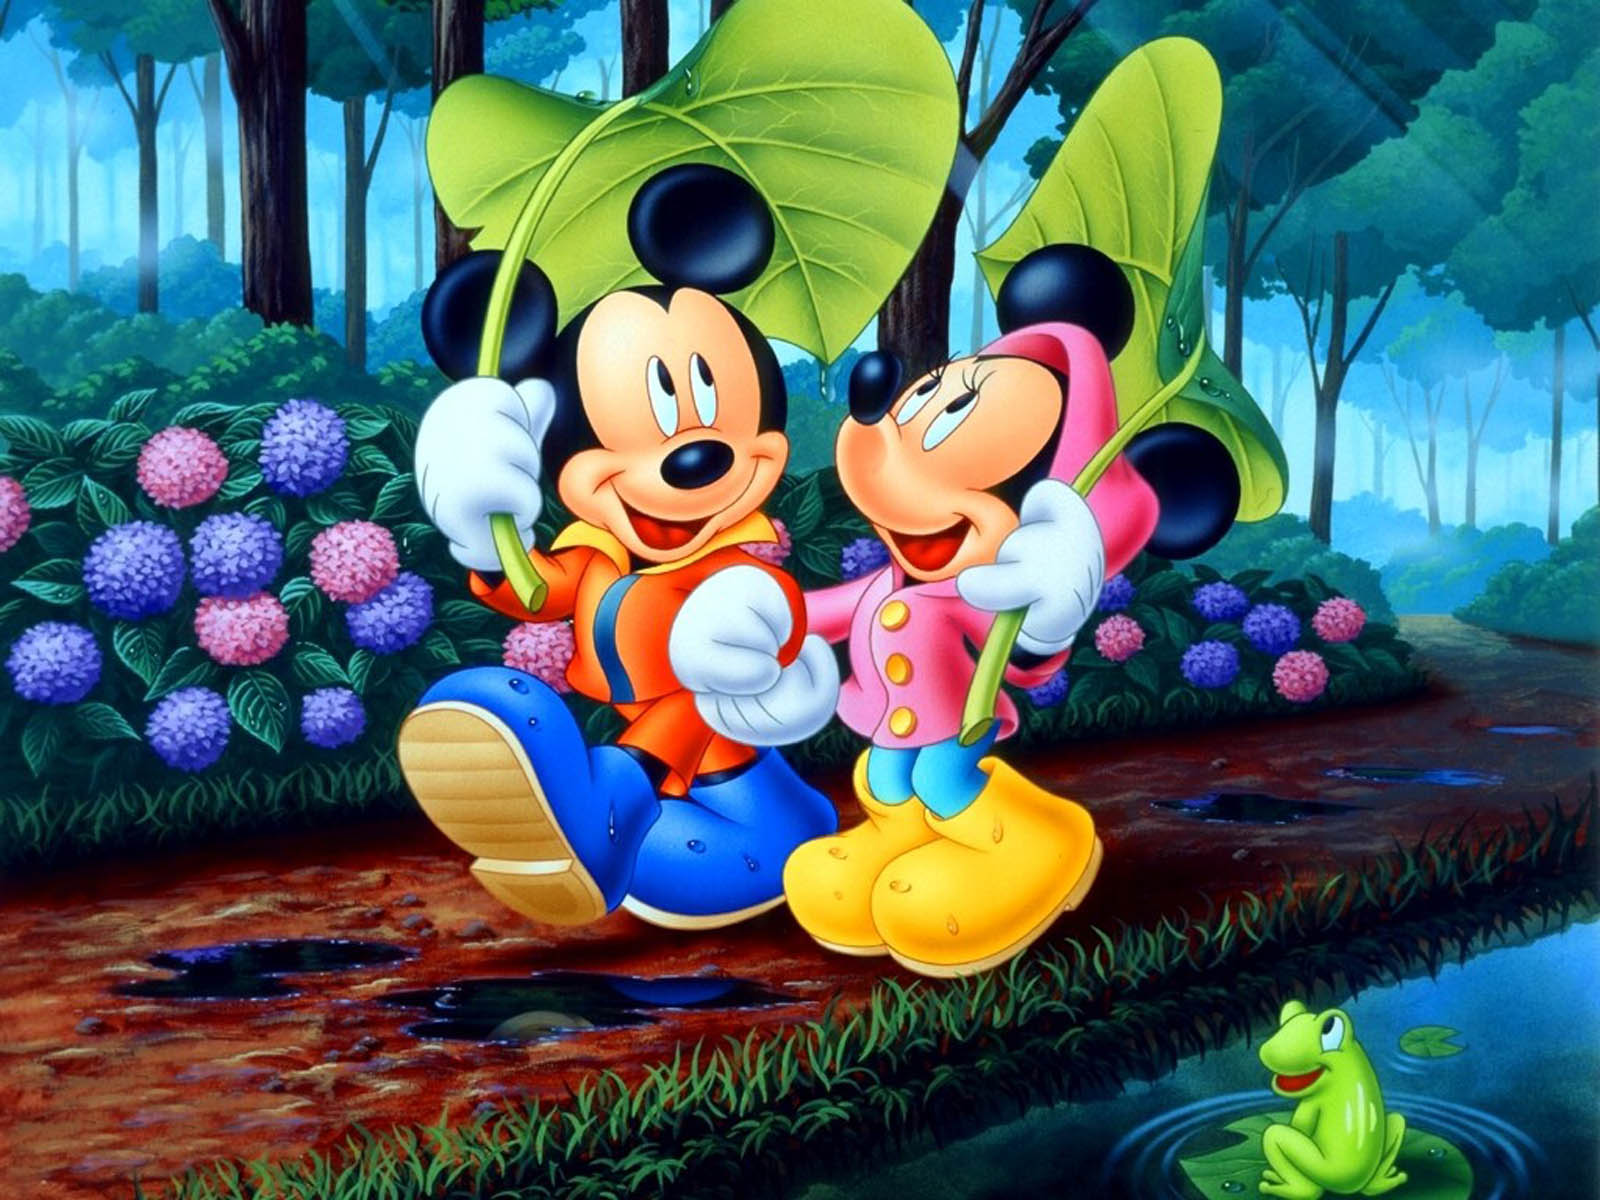 Mickey+Mouse+Wallpapers+6